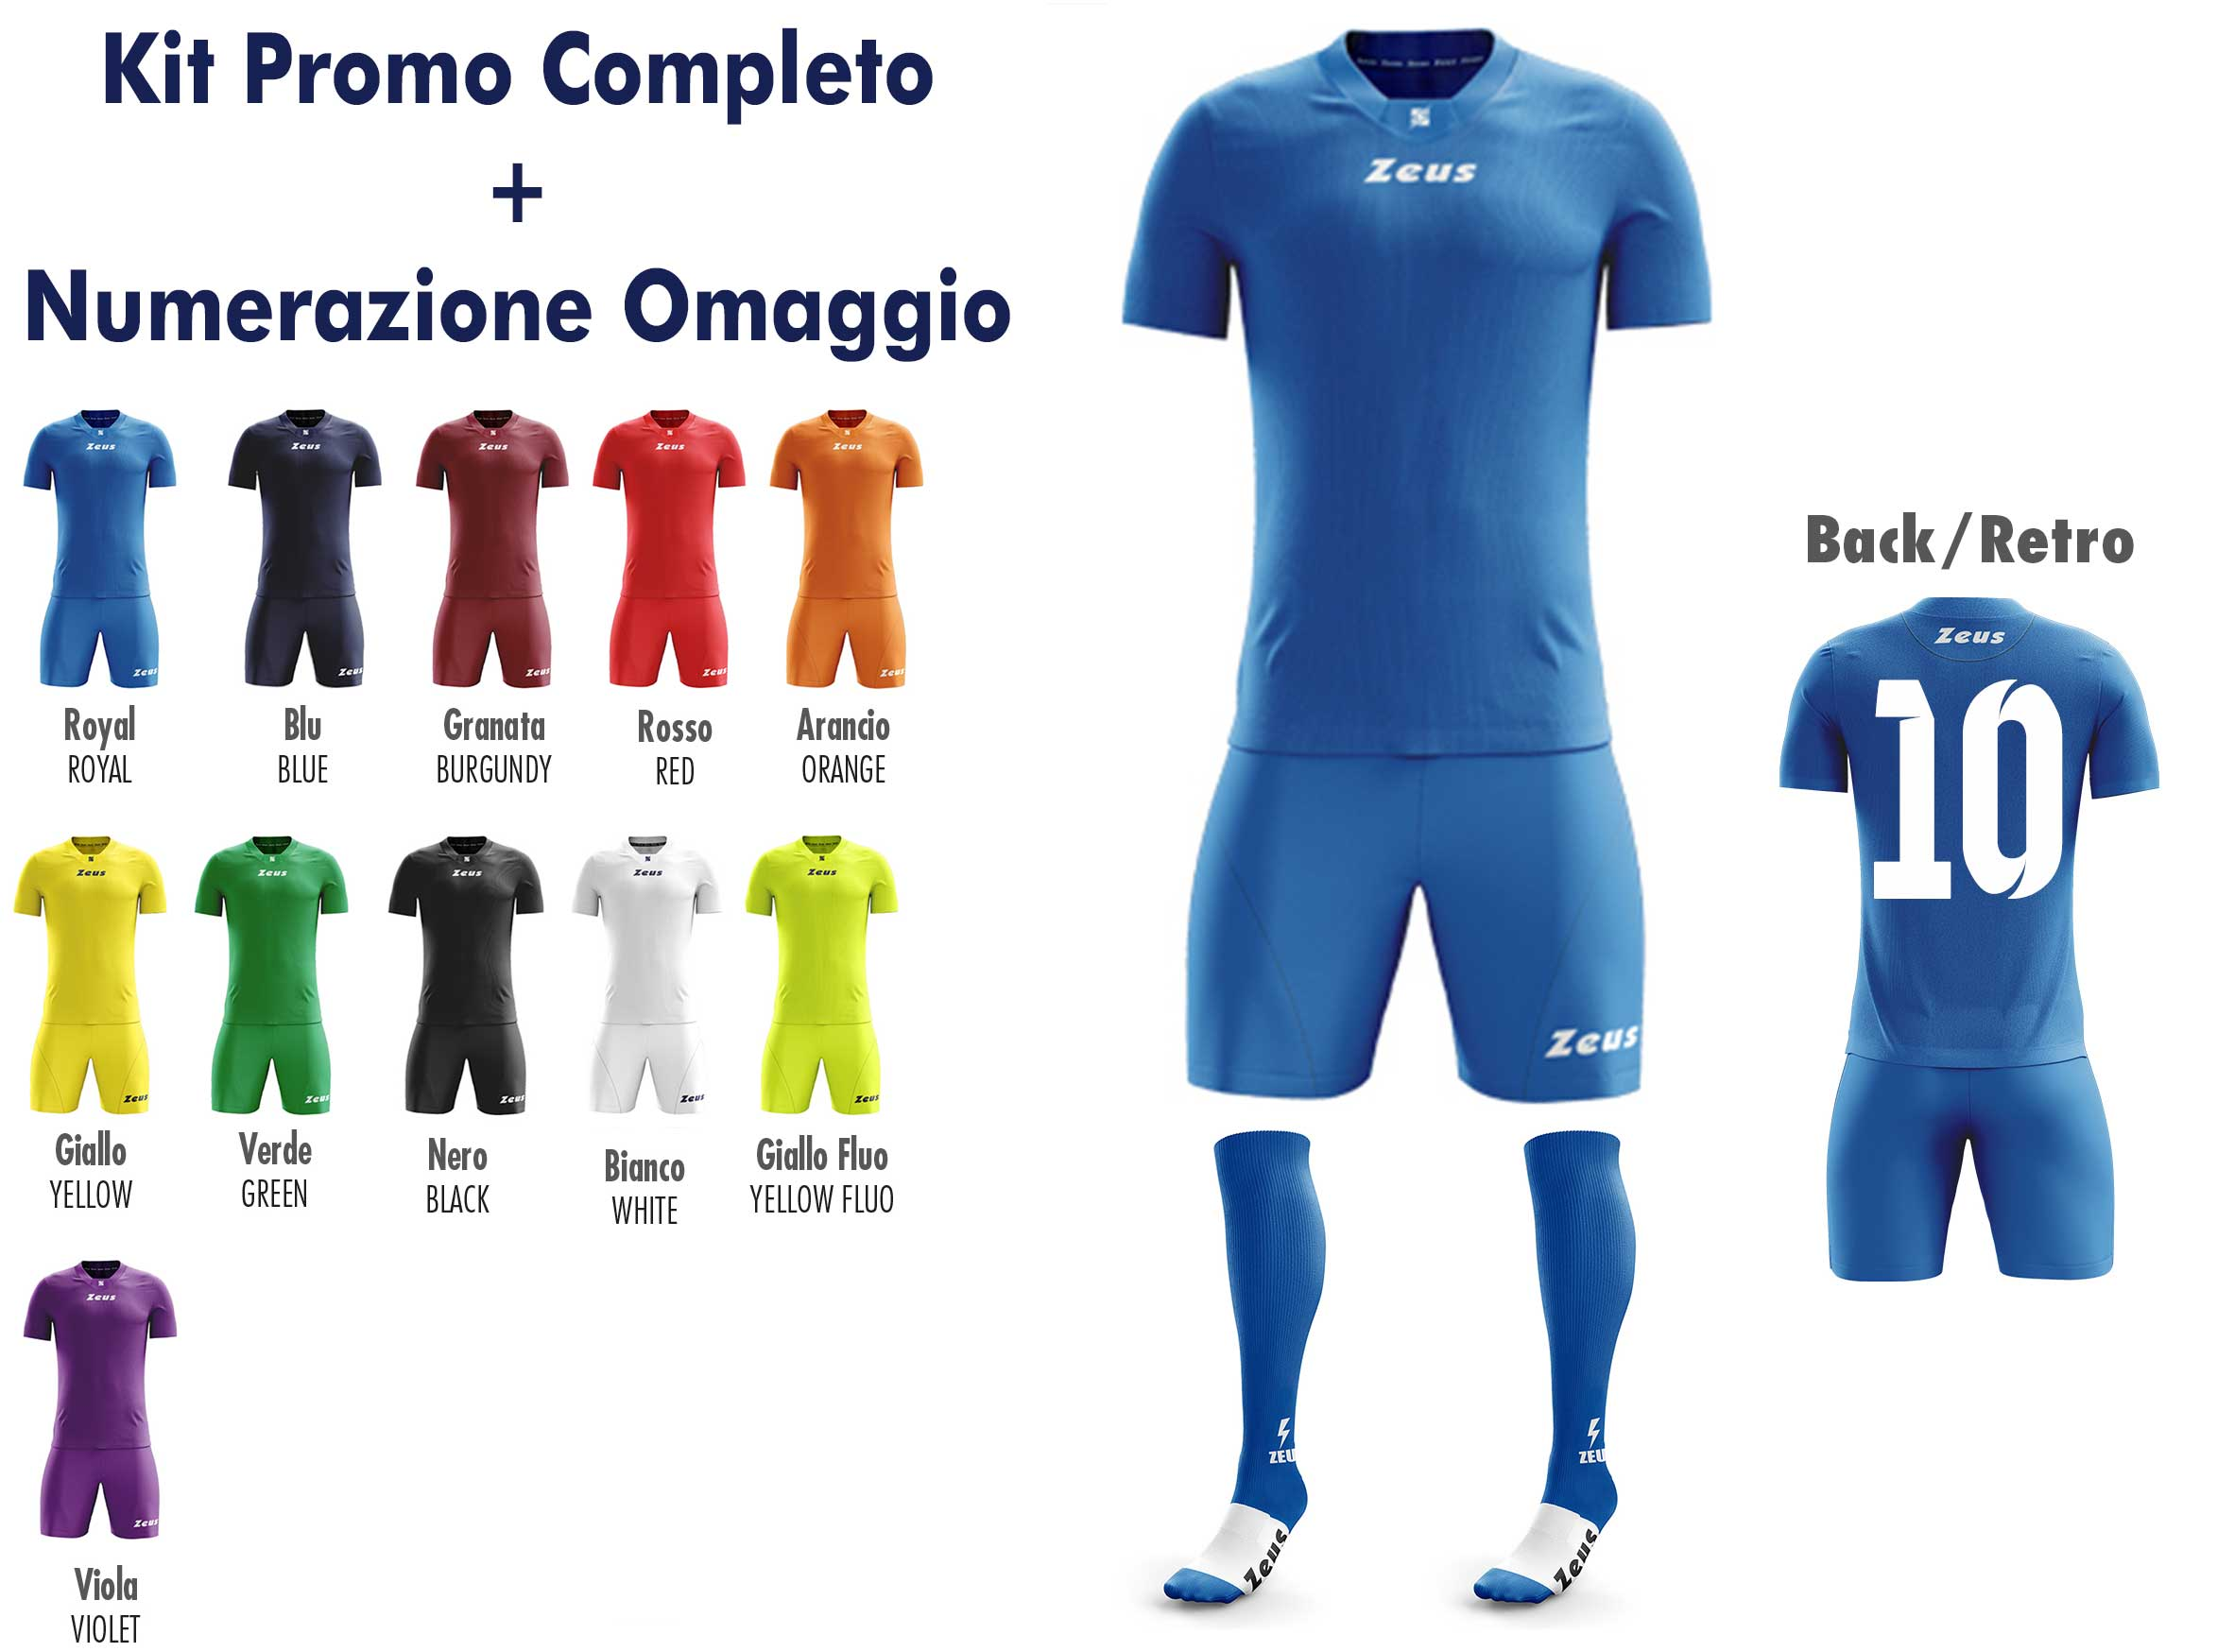 kit-promo-completo-front1